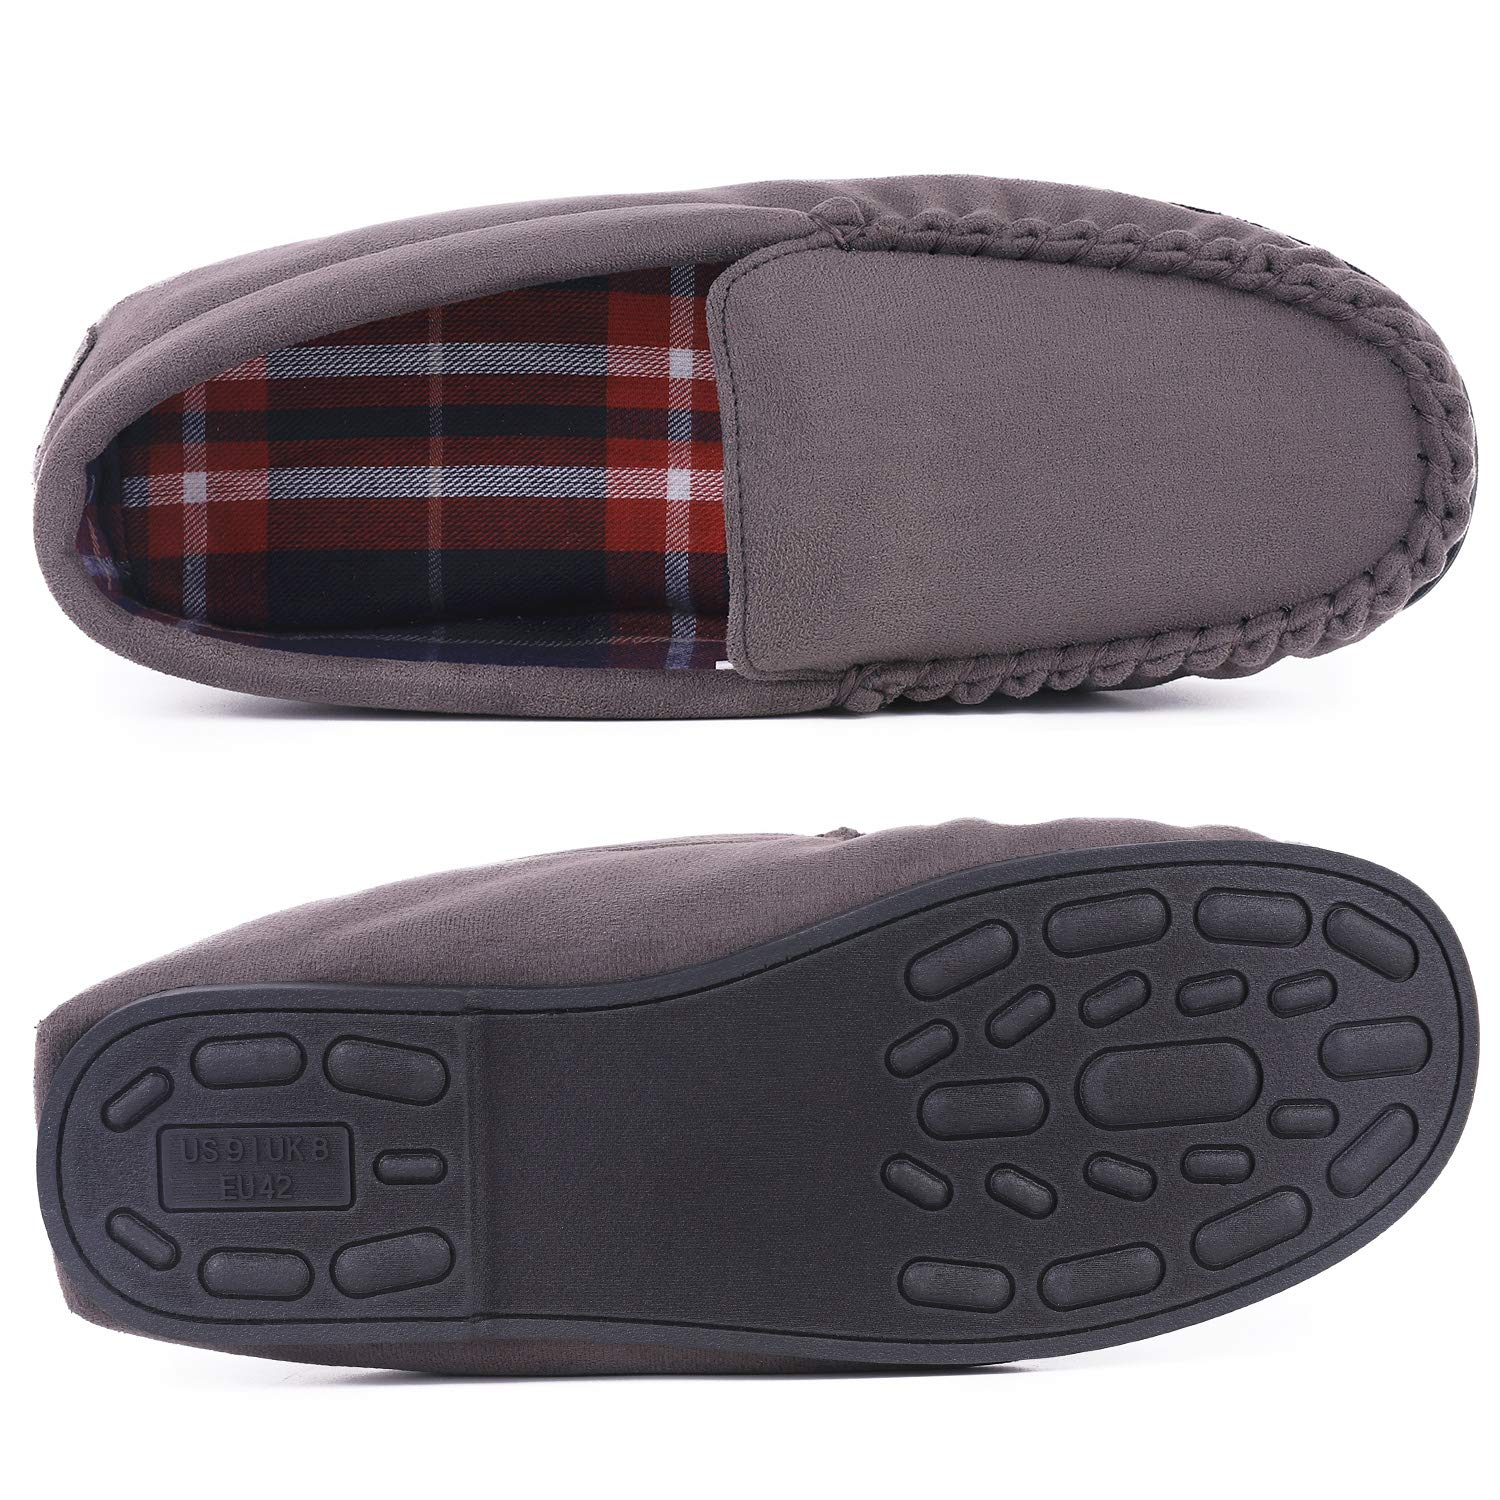 Amazon.com: Mocasines para hombre, ligeros, transpirables ...